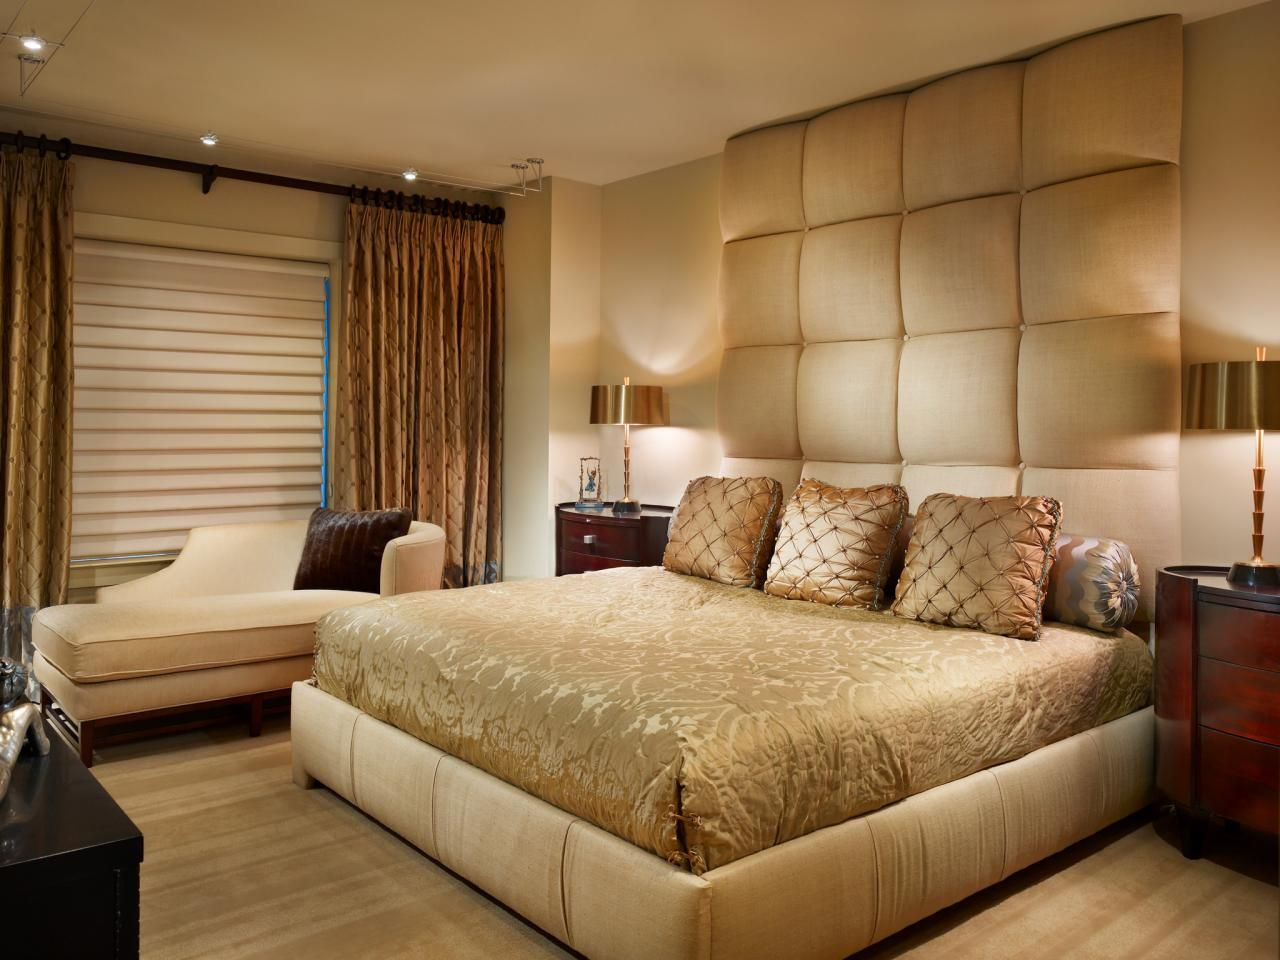 Bedroom color schemes romantic - Pictures Of Bedroom Color Options From Soothing To Romantic